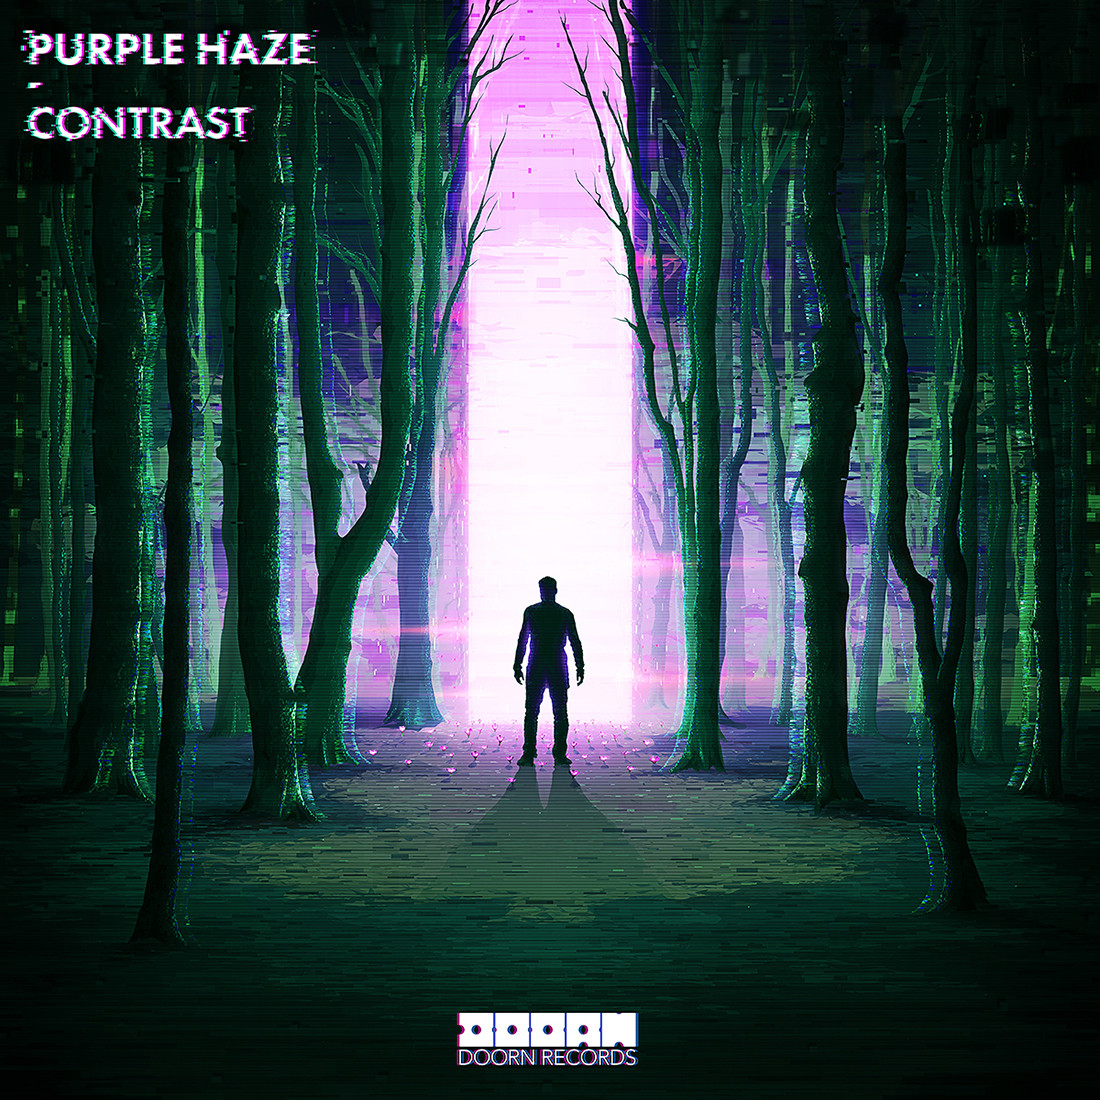 Purple Haze - Contrast